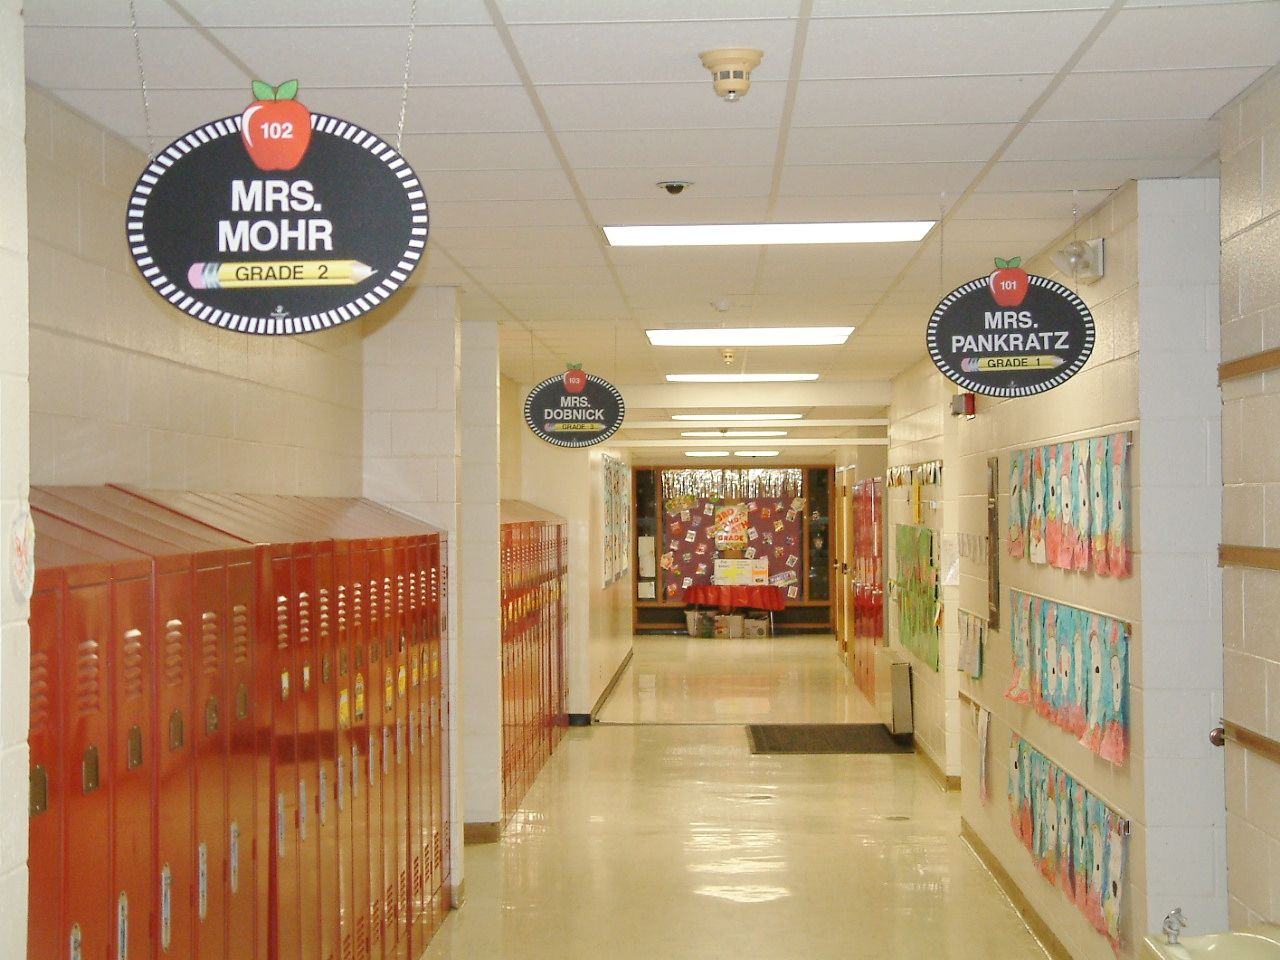 Welcoming School Hallway Signs These Are Doublesided And. Feels Like Signs. Workplace Stress Signs. Child's Signs. Deal Signs Of Stroke. Times Table Signs Of Stroke. Different Situation Signs Of Stroke. Revenge Signs Of Stroke. Sleep Signs